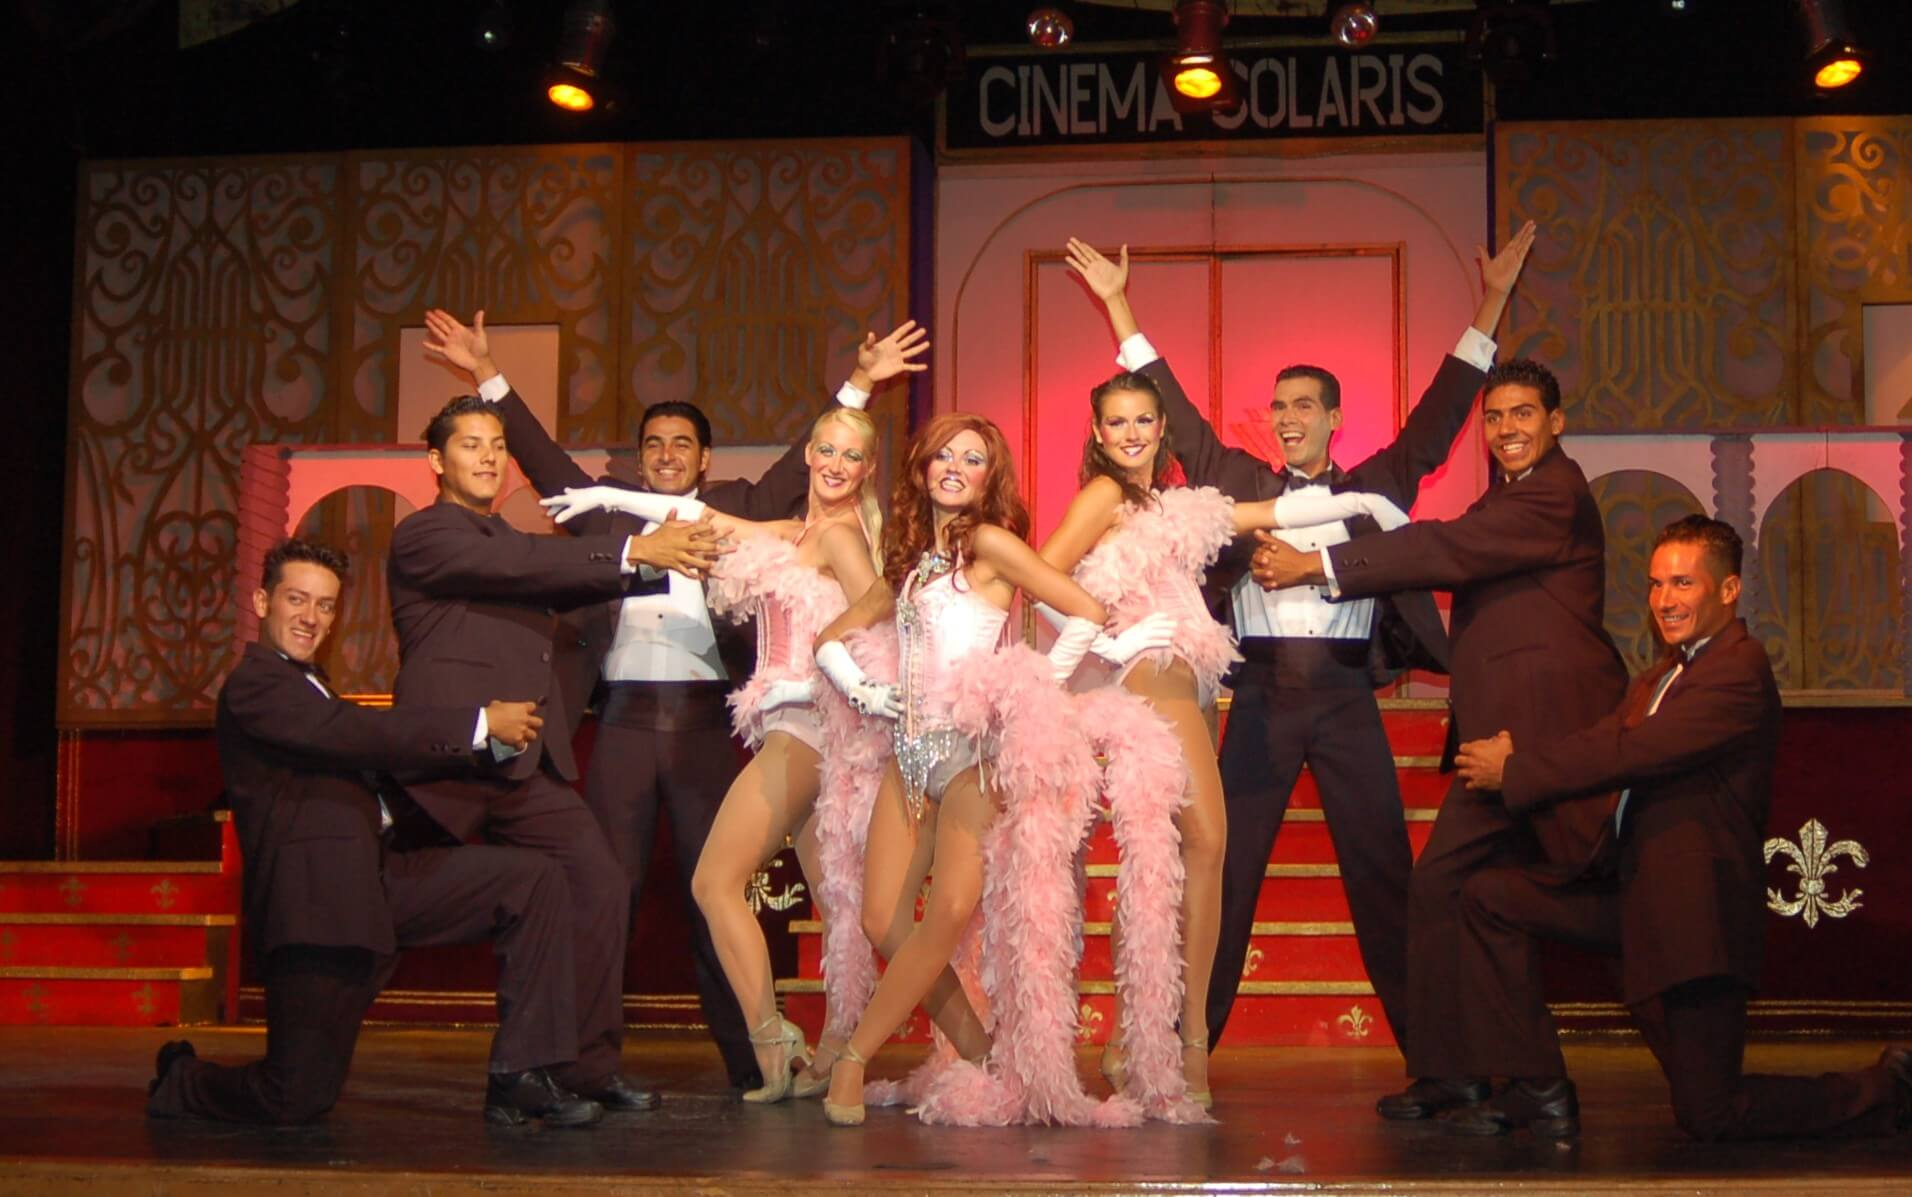 Show boadway style in cancun at royal solaris cancun all inclusive resort